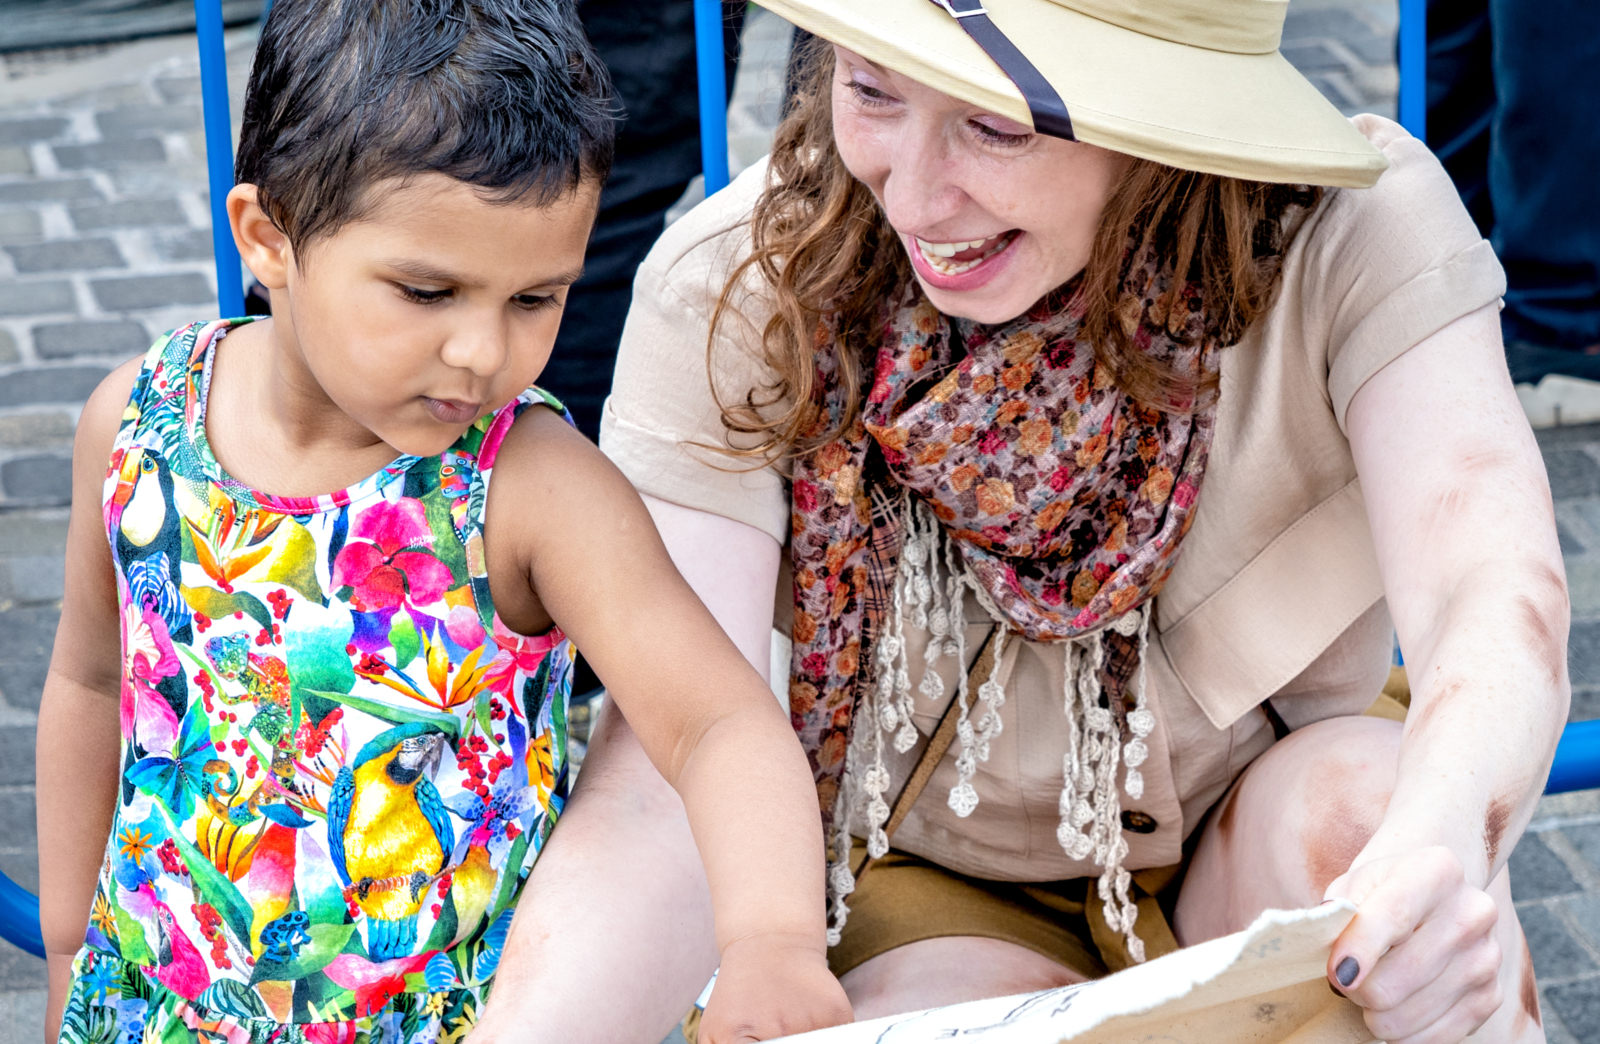 A woman dressed as an explorer shows a map to a young child